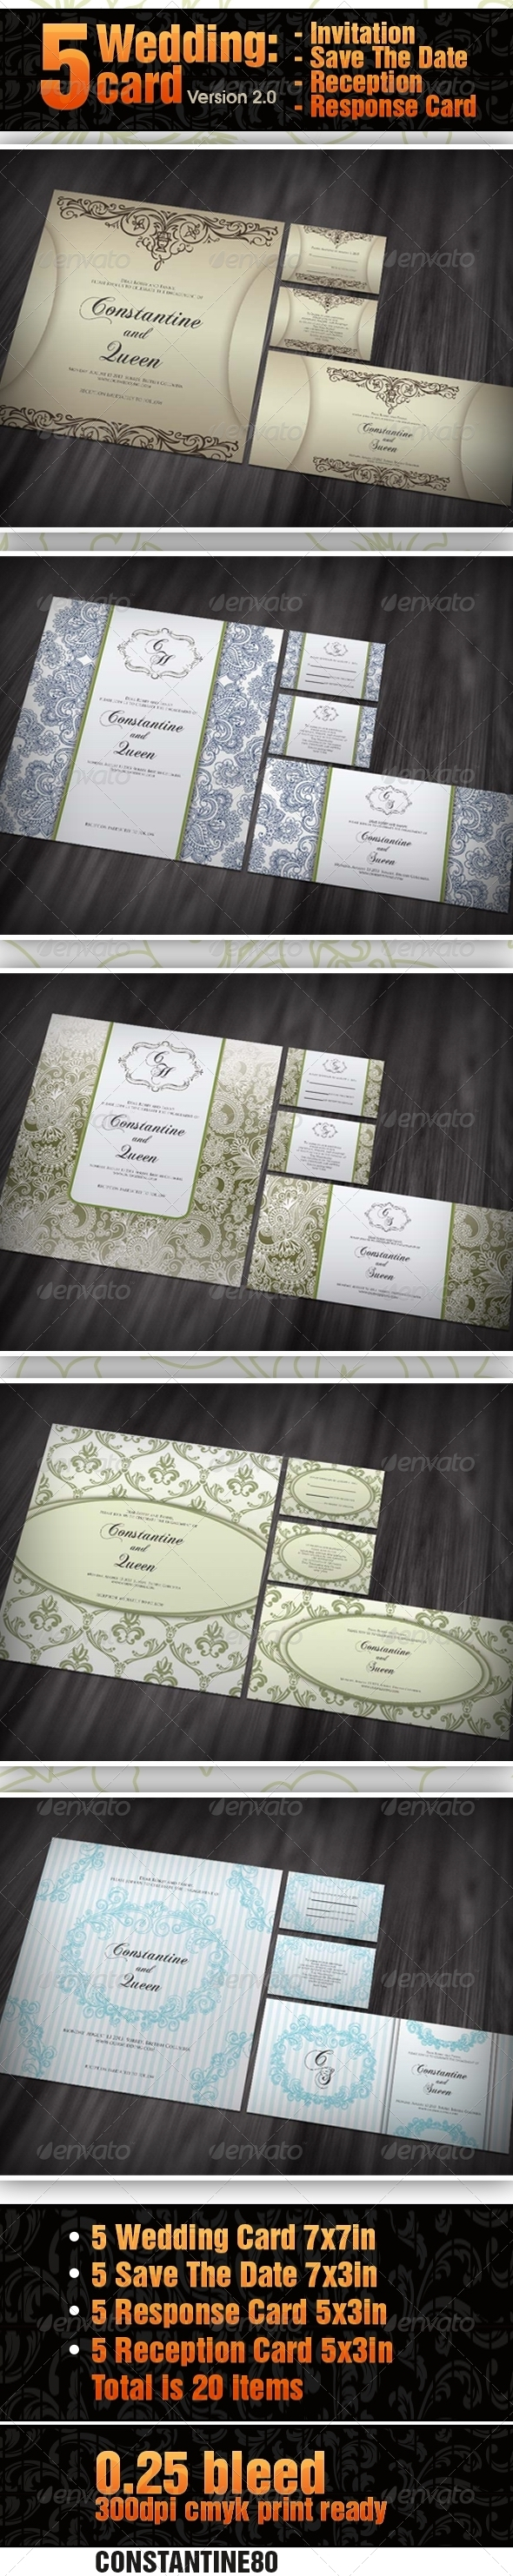 5 items Wedding Card ver 2.0 - Weddings Cards & Invites